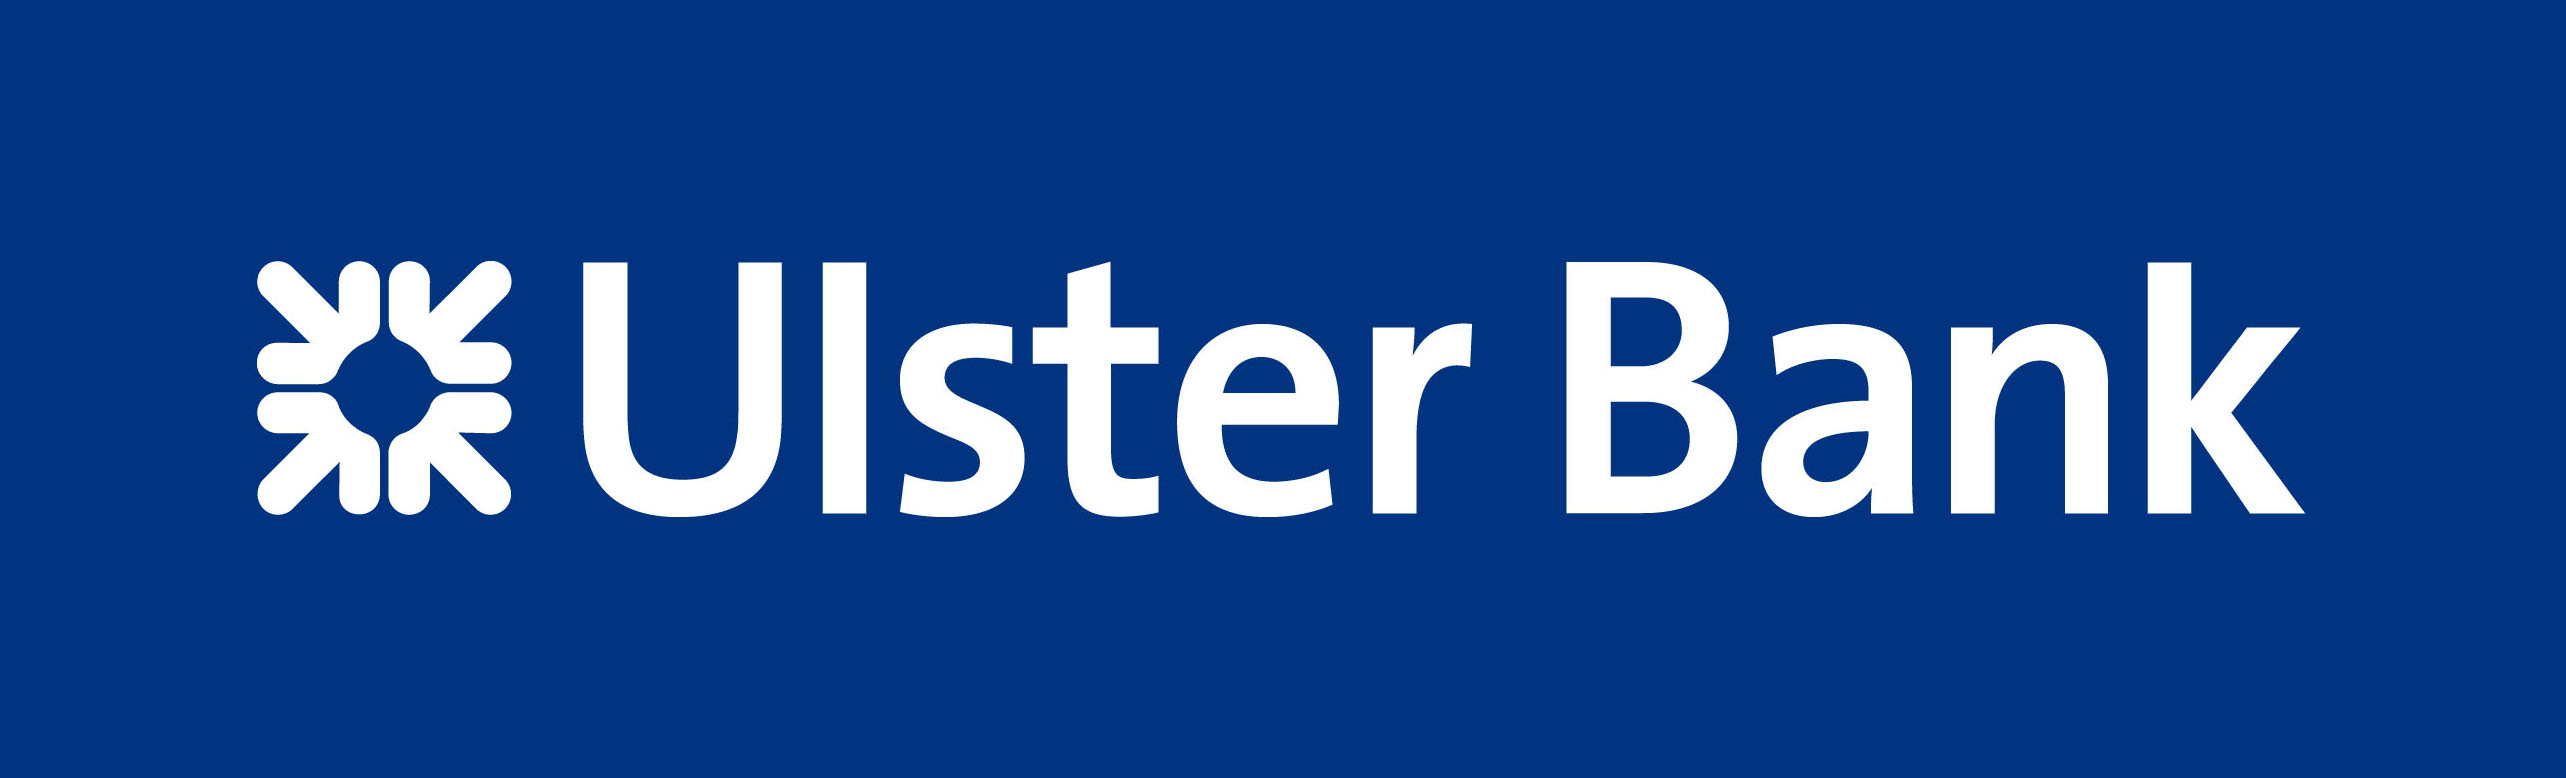 ulster bank sells off  u00a31 6bn loans for  u00a3360m boxing logos and drawings boxing logo picture